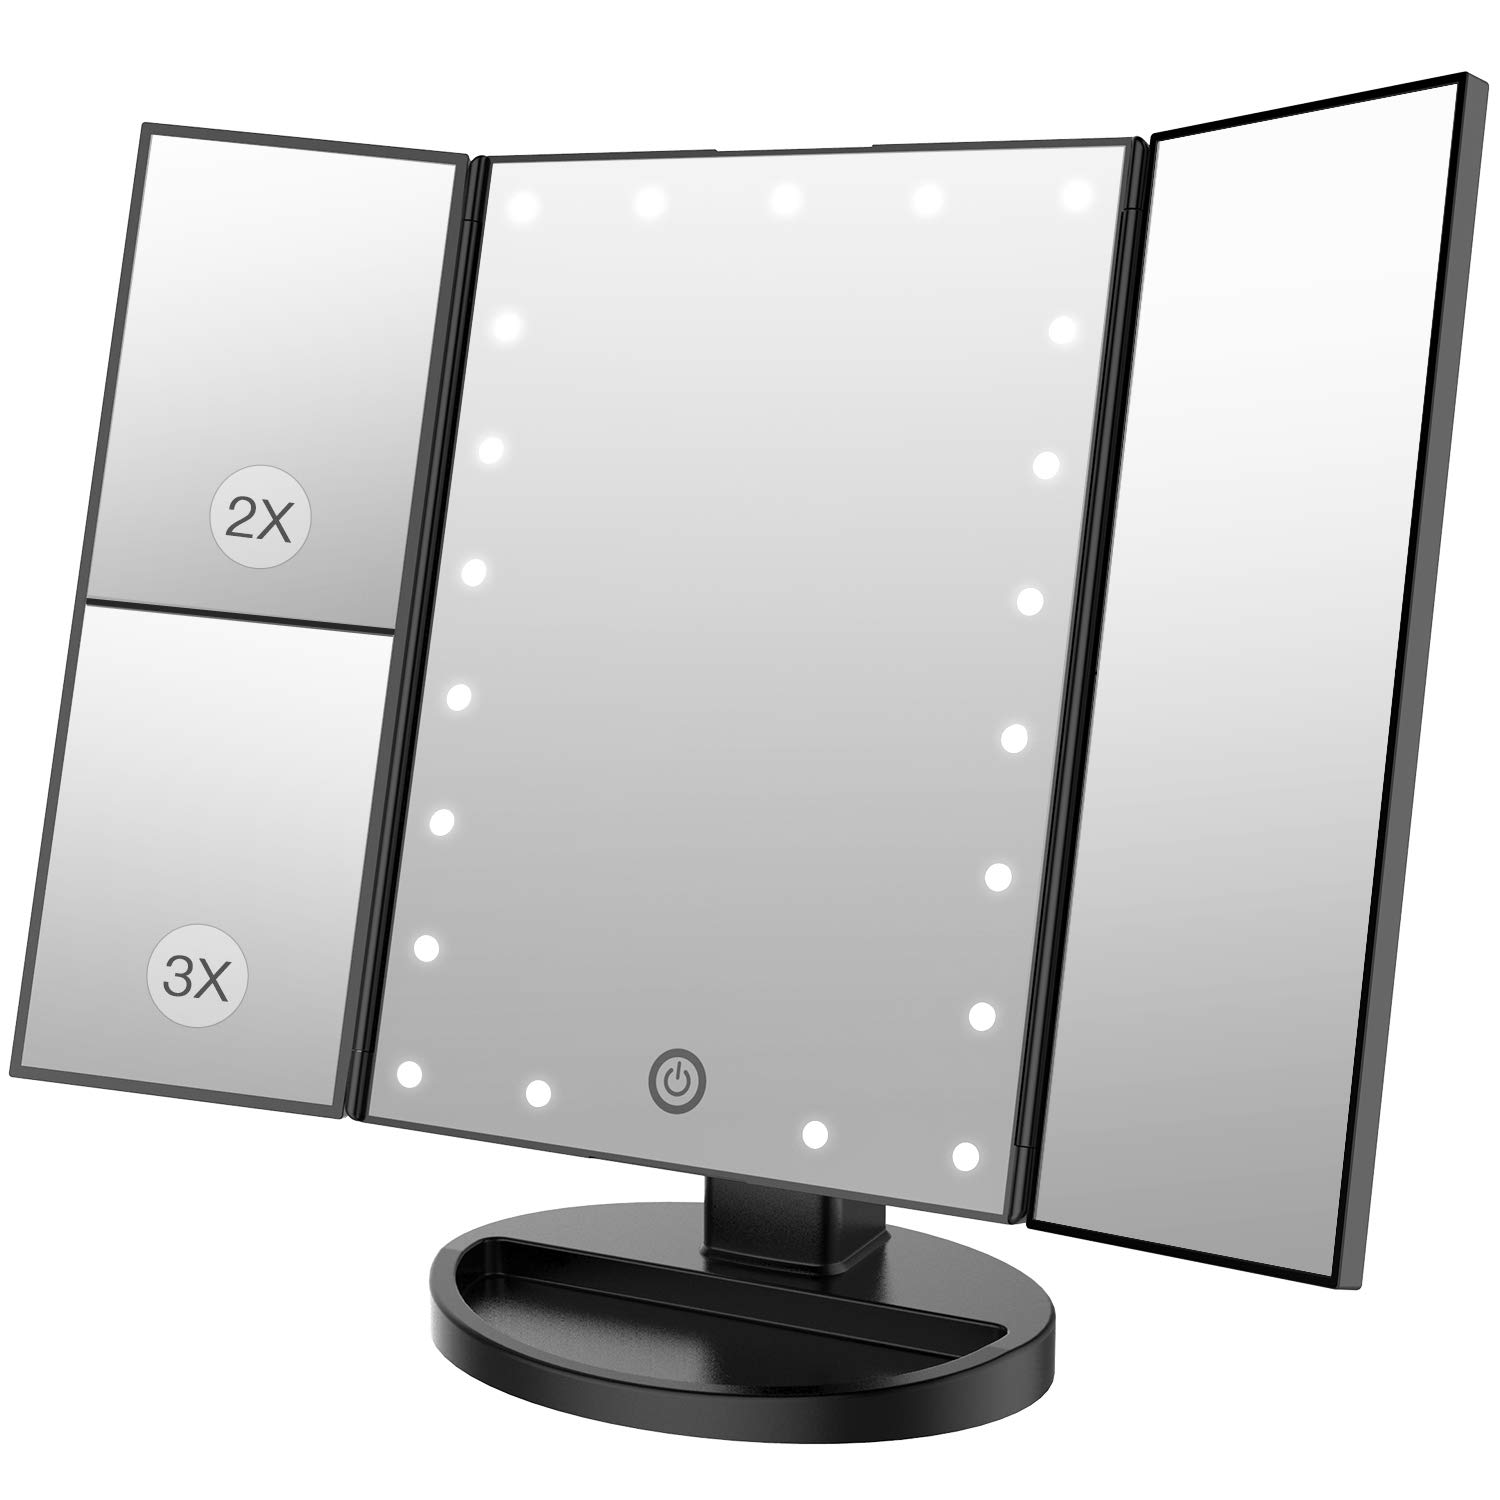 BESTOPE Makeup Vanity Mirror with 3x 2x Magnification,Trifold Mirror with 21 Led Lights,Touch Screen, 180 Adjustable Rotation,Dual Power Supply, Countertop Cosmetic Mirror